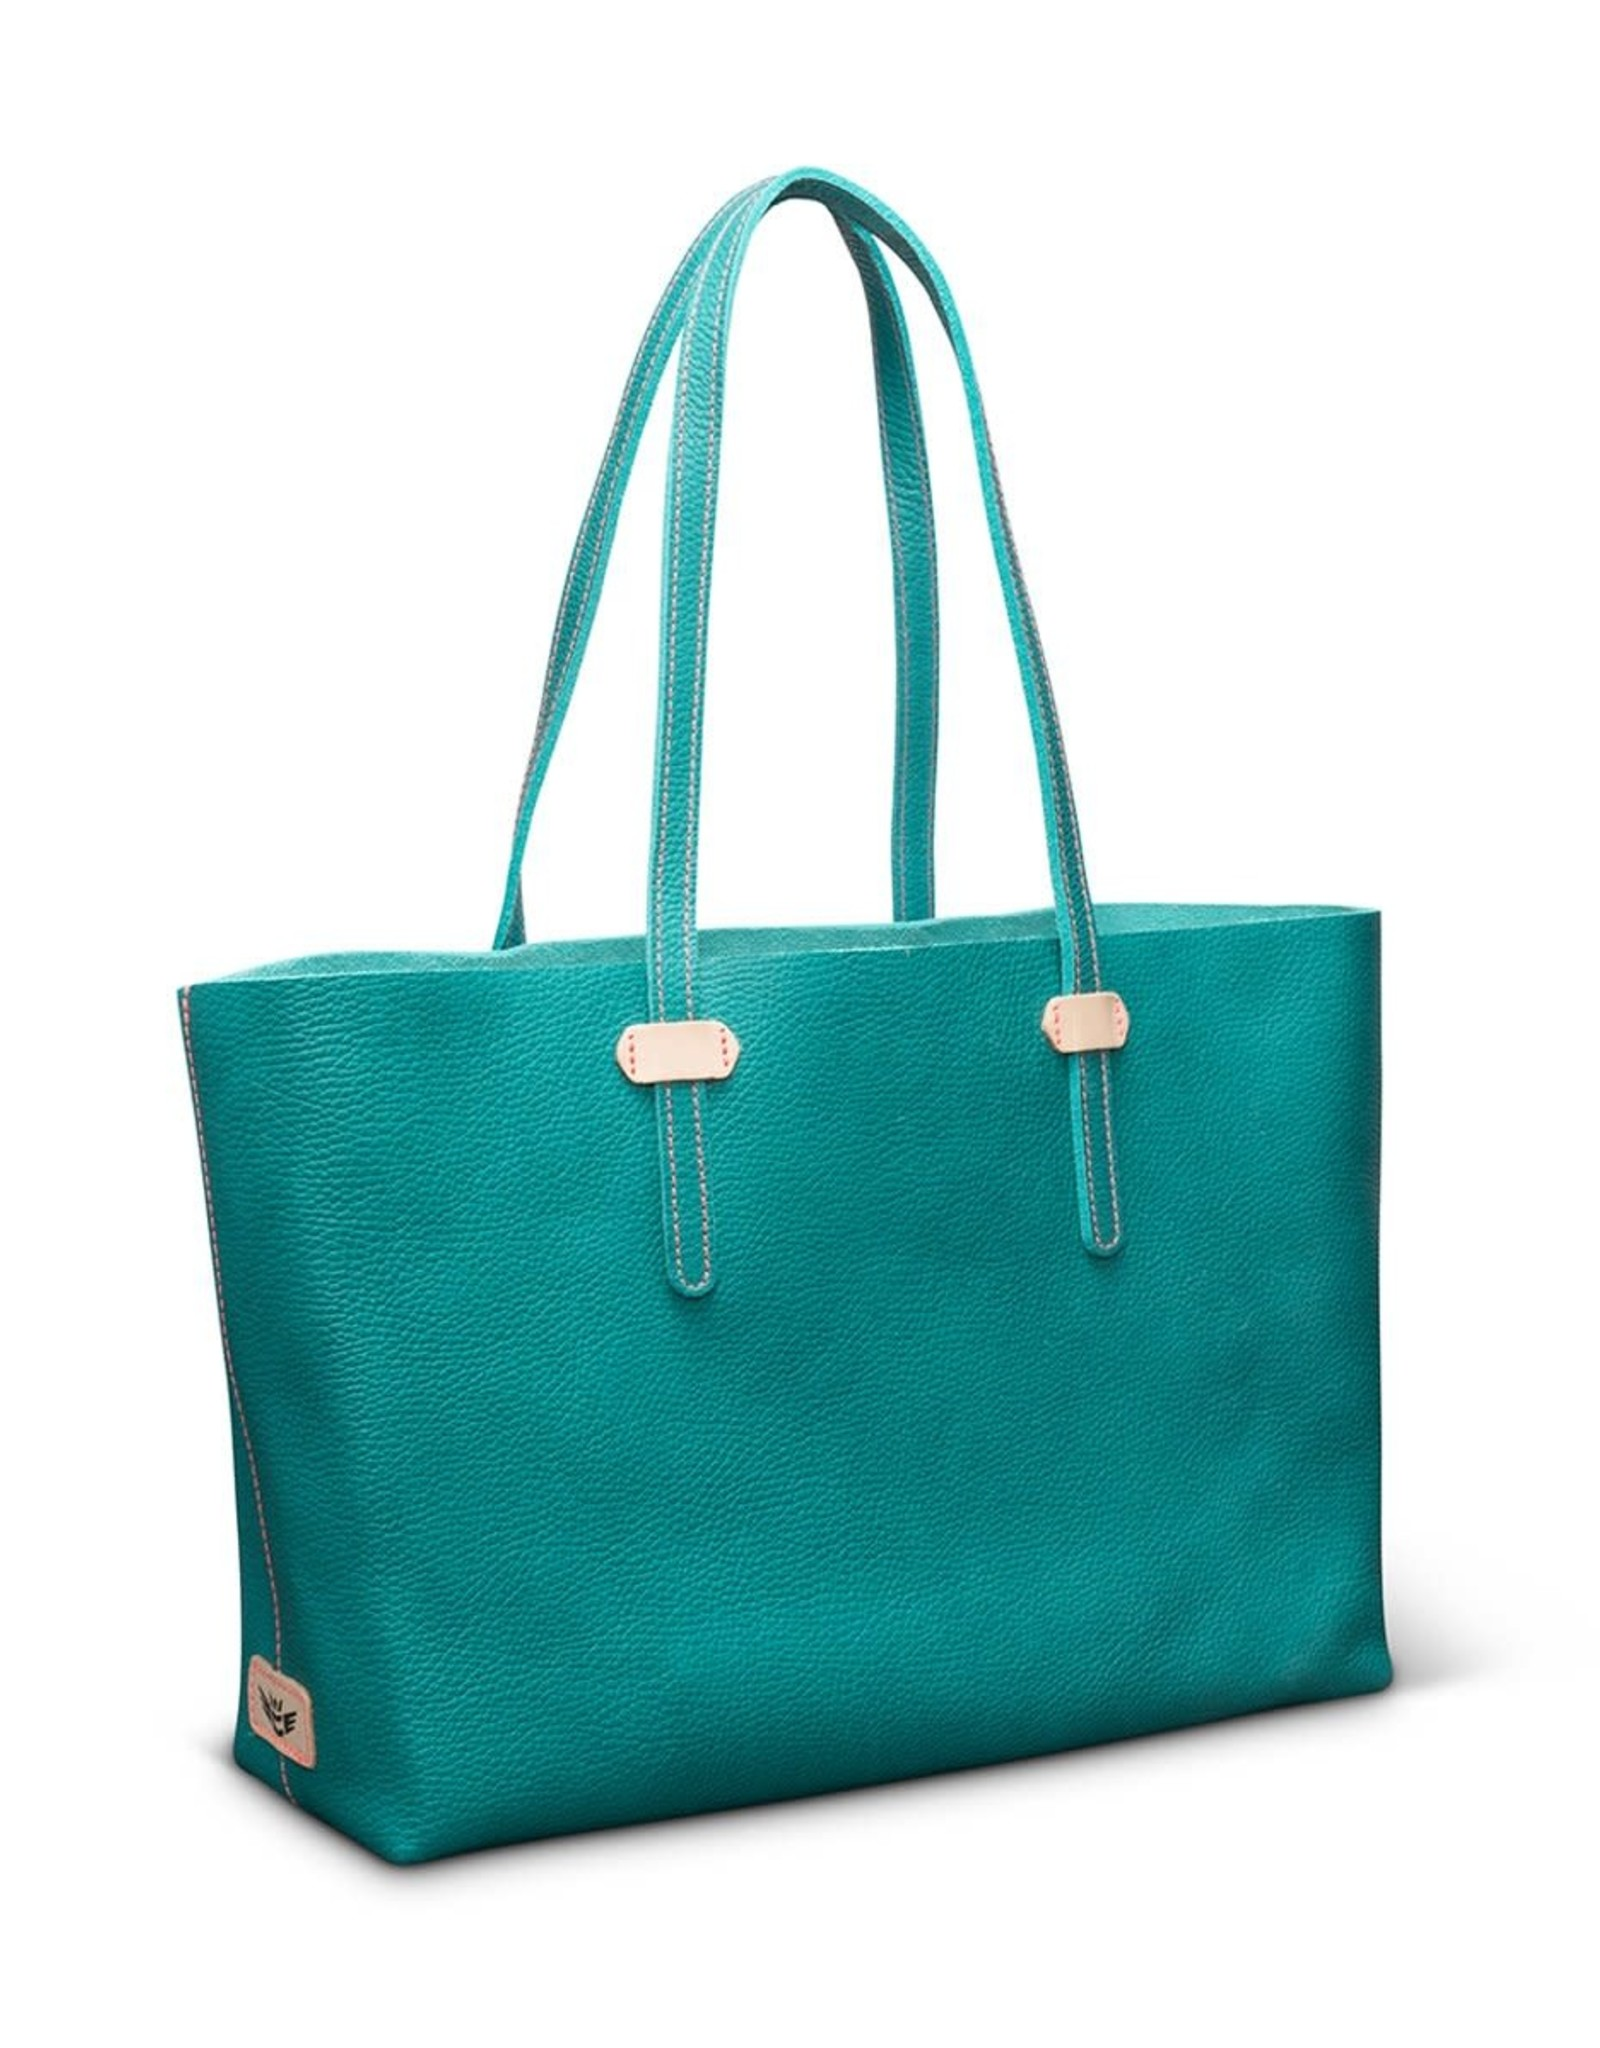 Consuela Guadalupe Breezy East West Tote